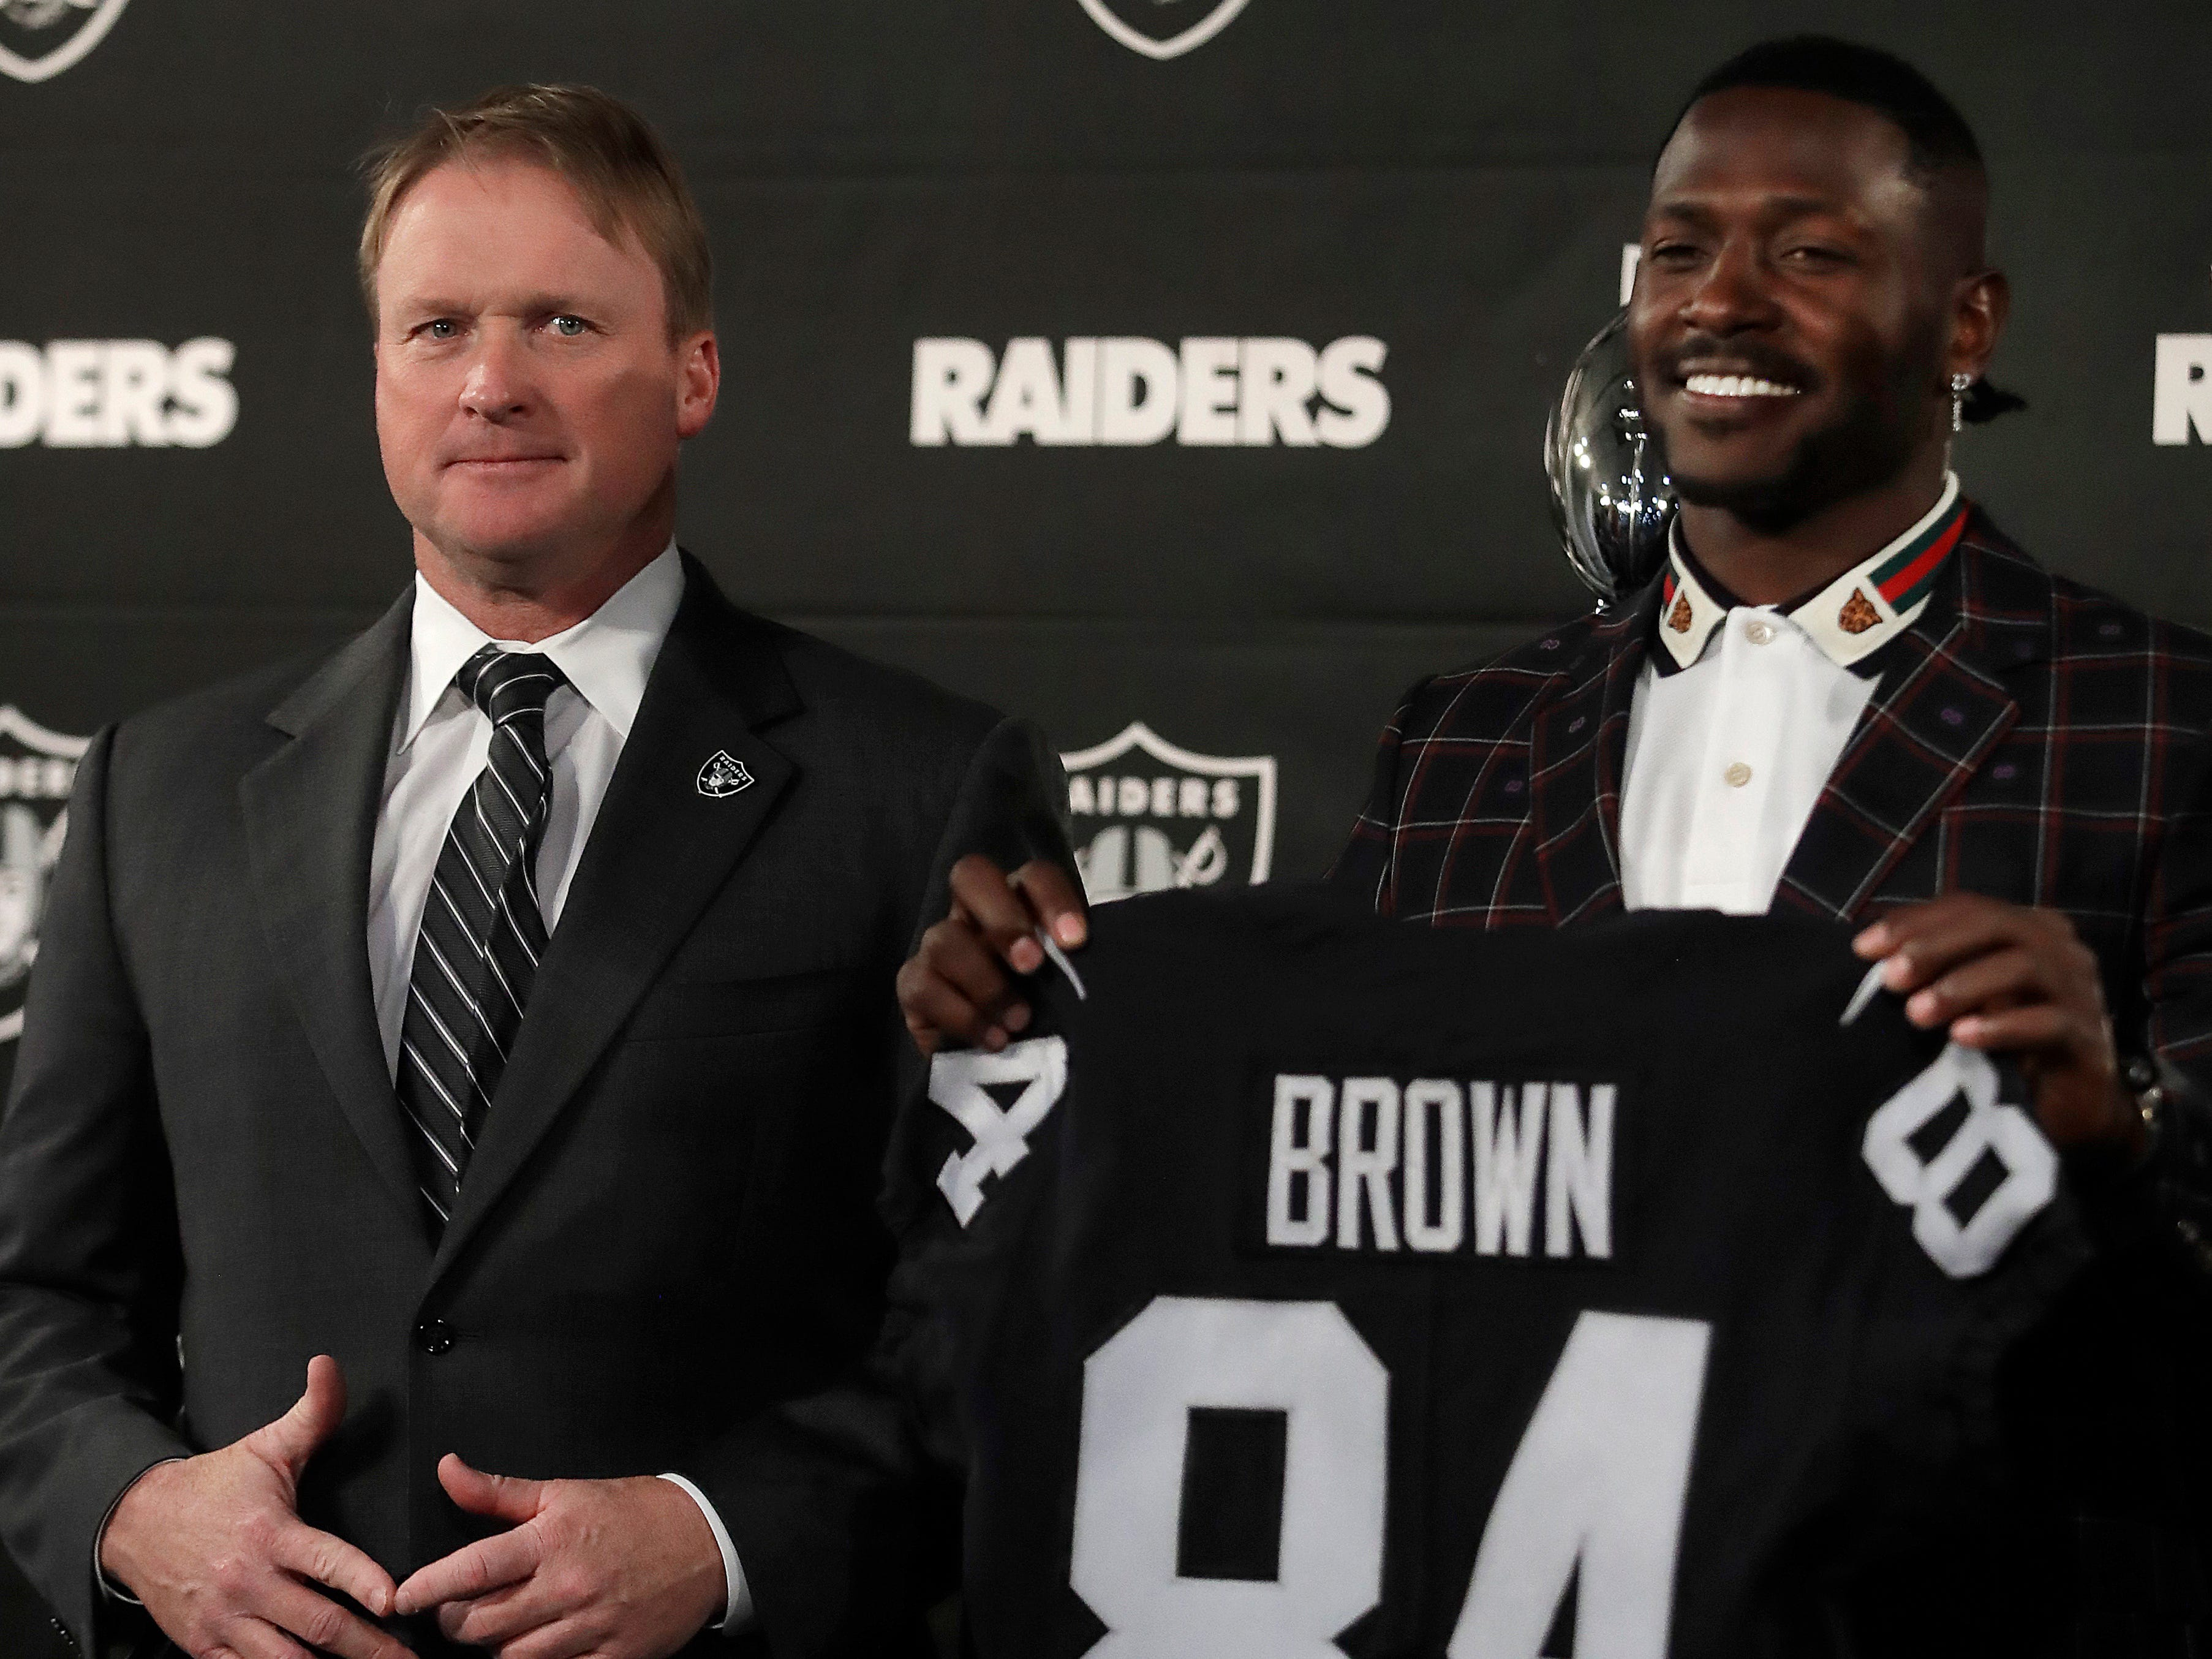 23. Raiders (24): Presumably they'll draft tailback, front seven reinforcements. But they've made some compelling moves, most notably Antonio Brown heist.